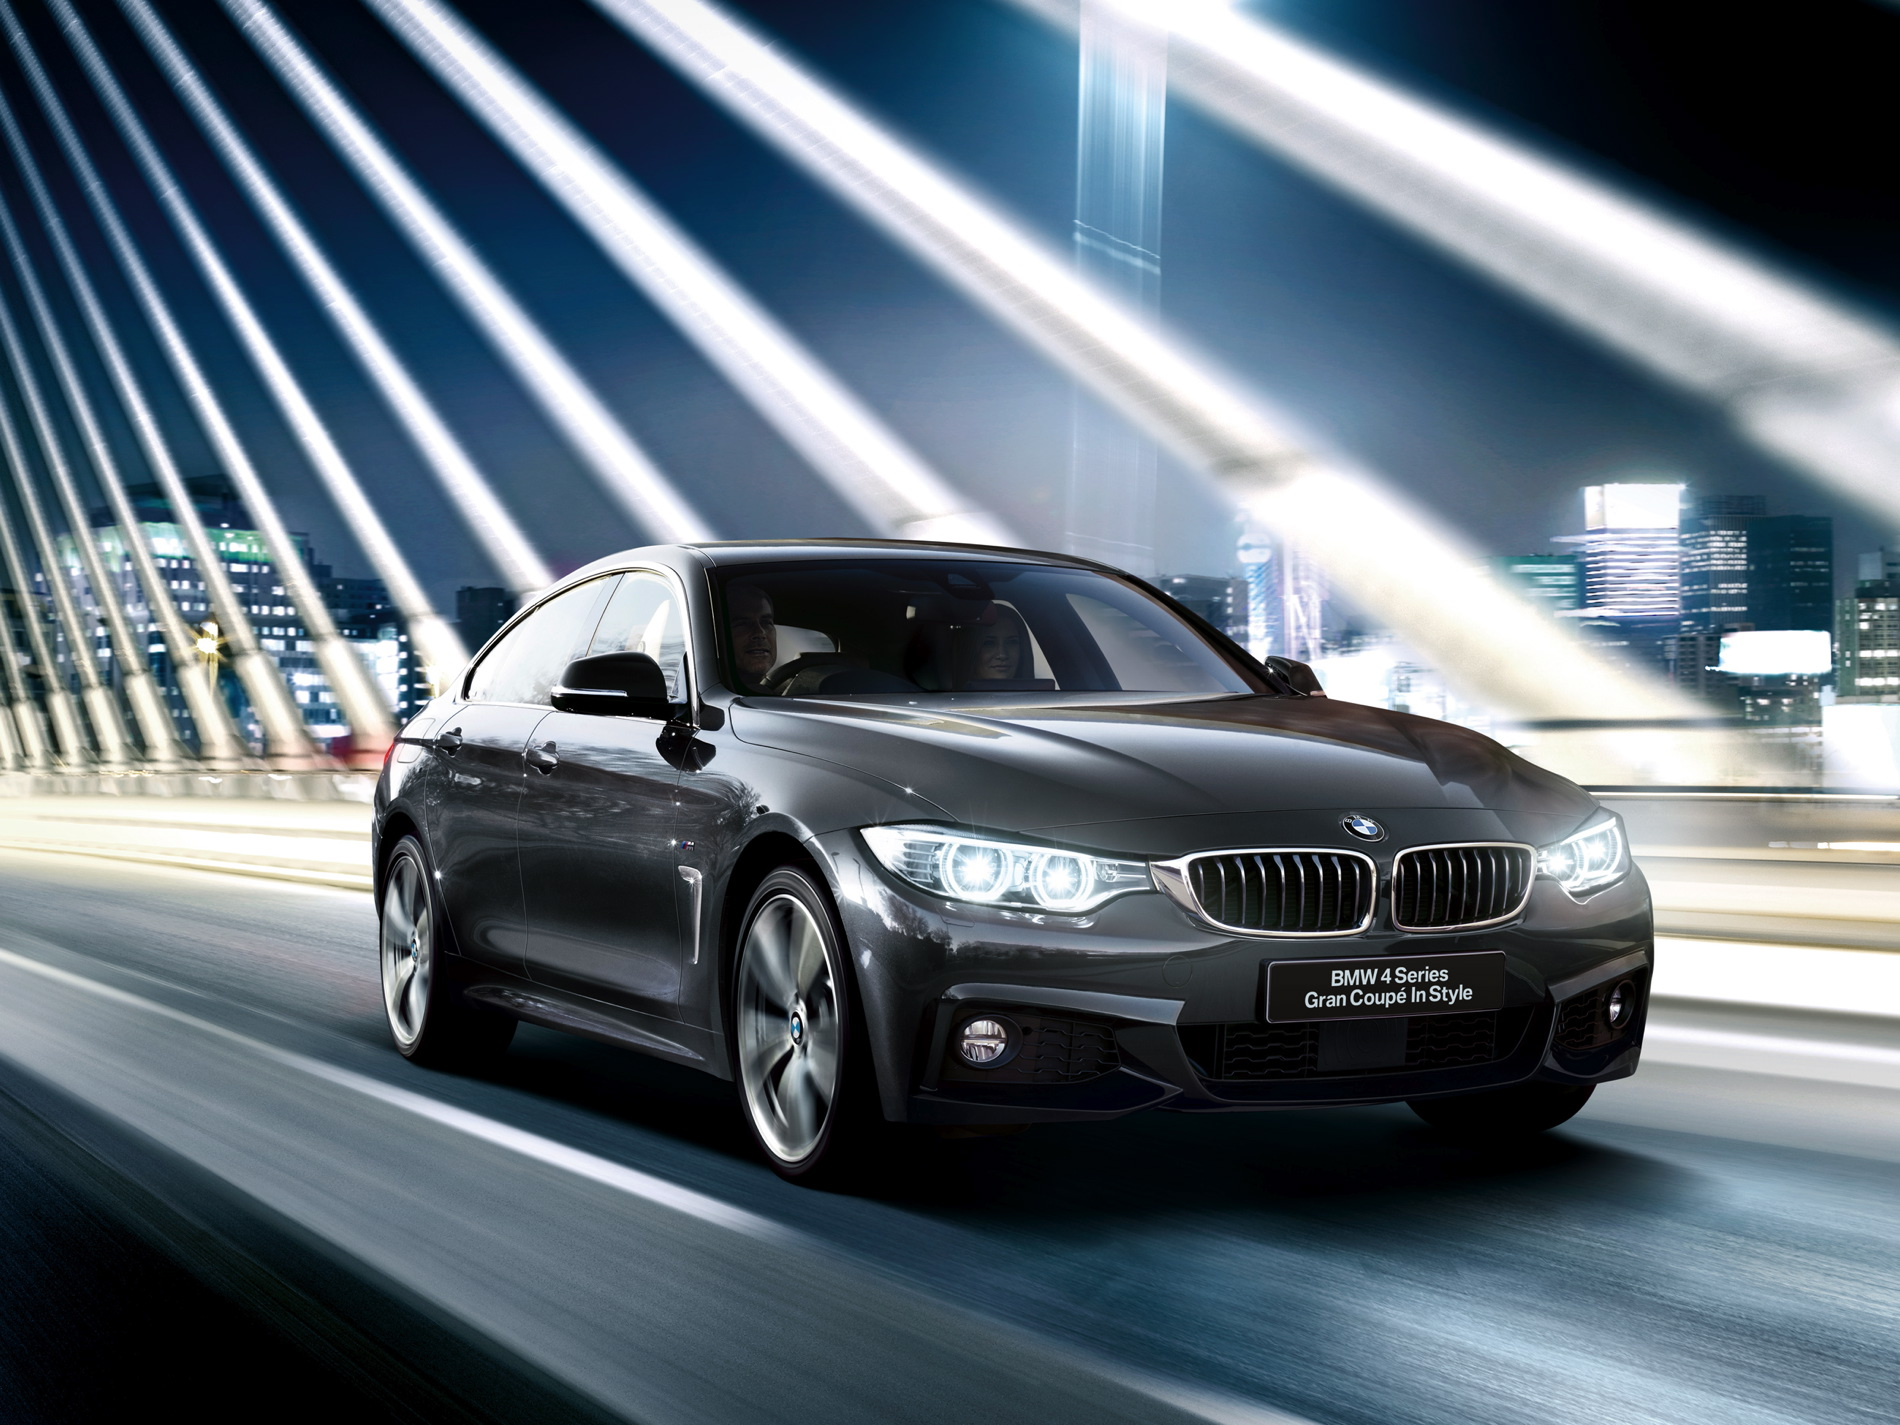 BMW 4 Series Gran Coupe in style 6